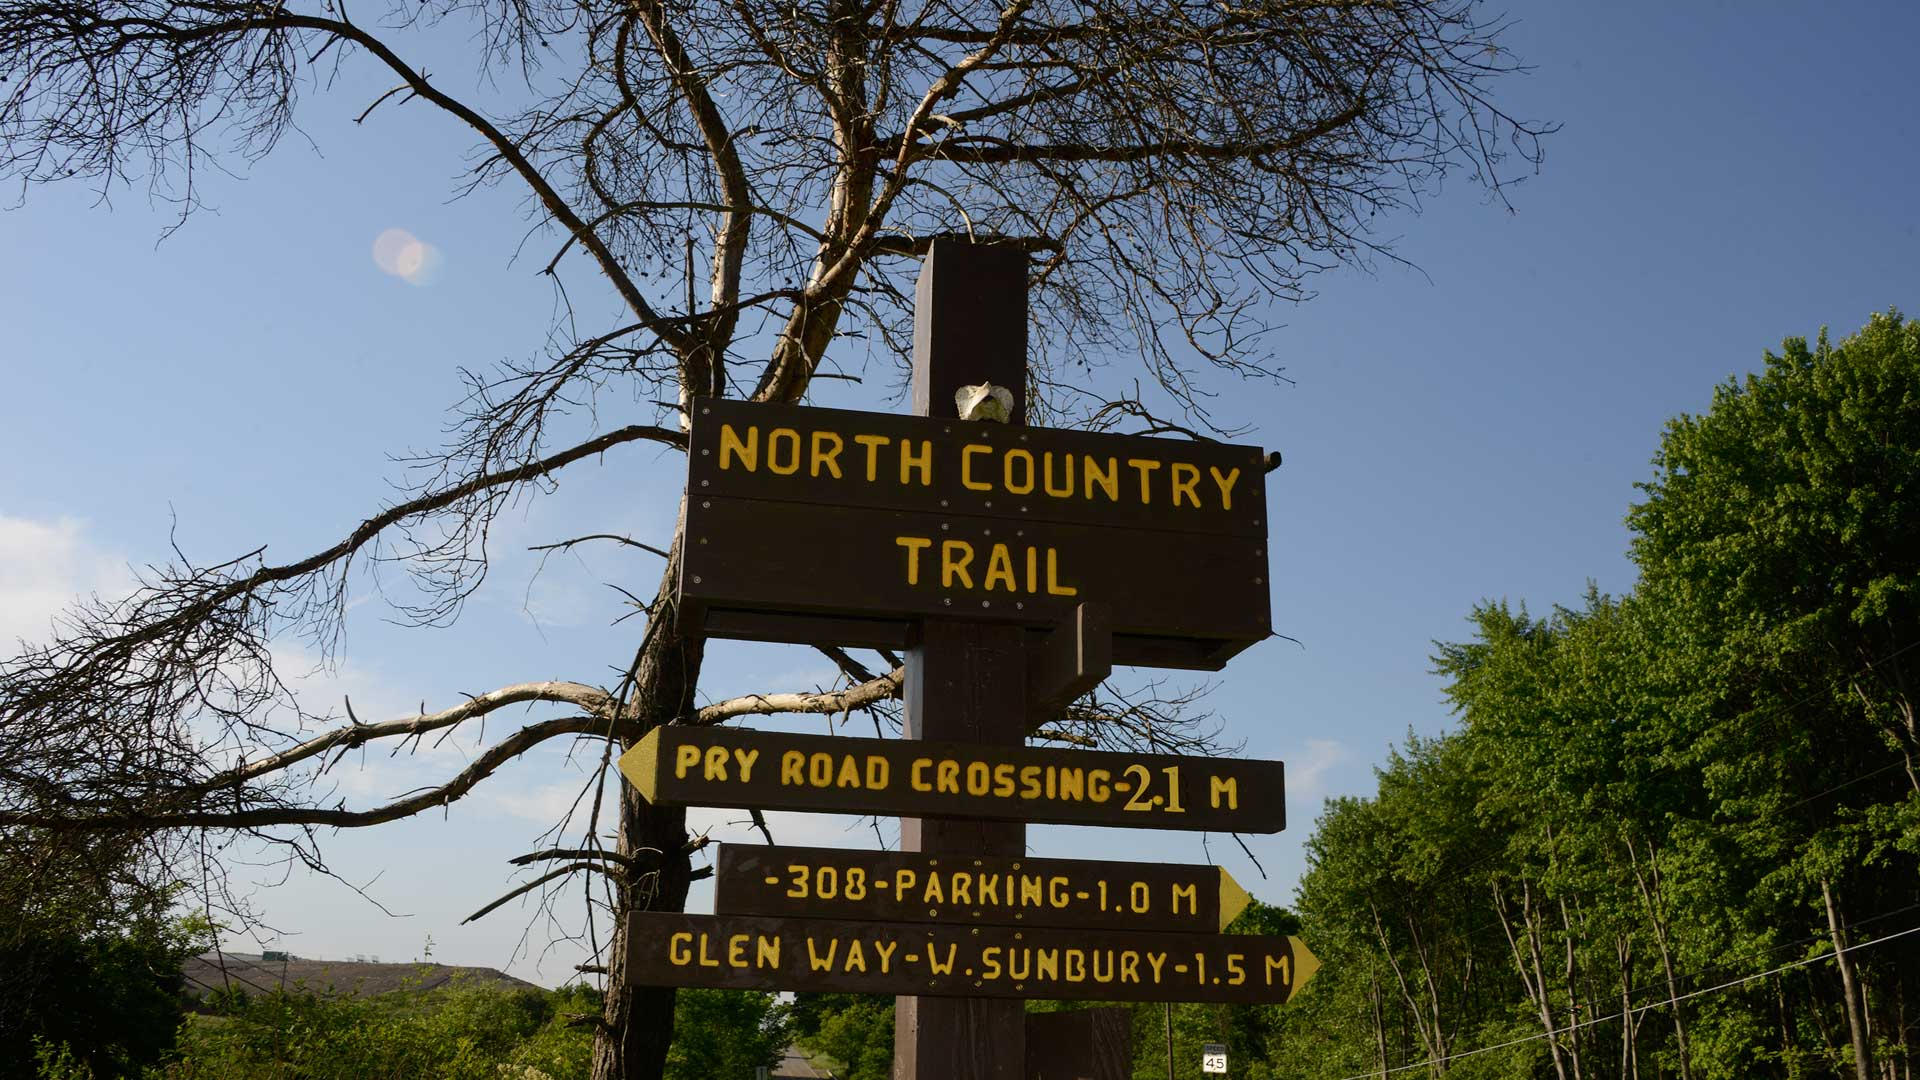 North Country National Scenic Trail Signage At Route 308, North Of The  Waste Management Entrance